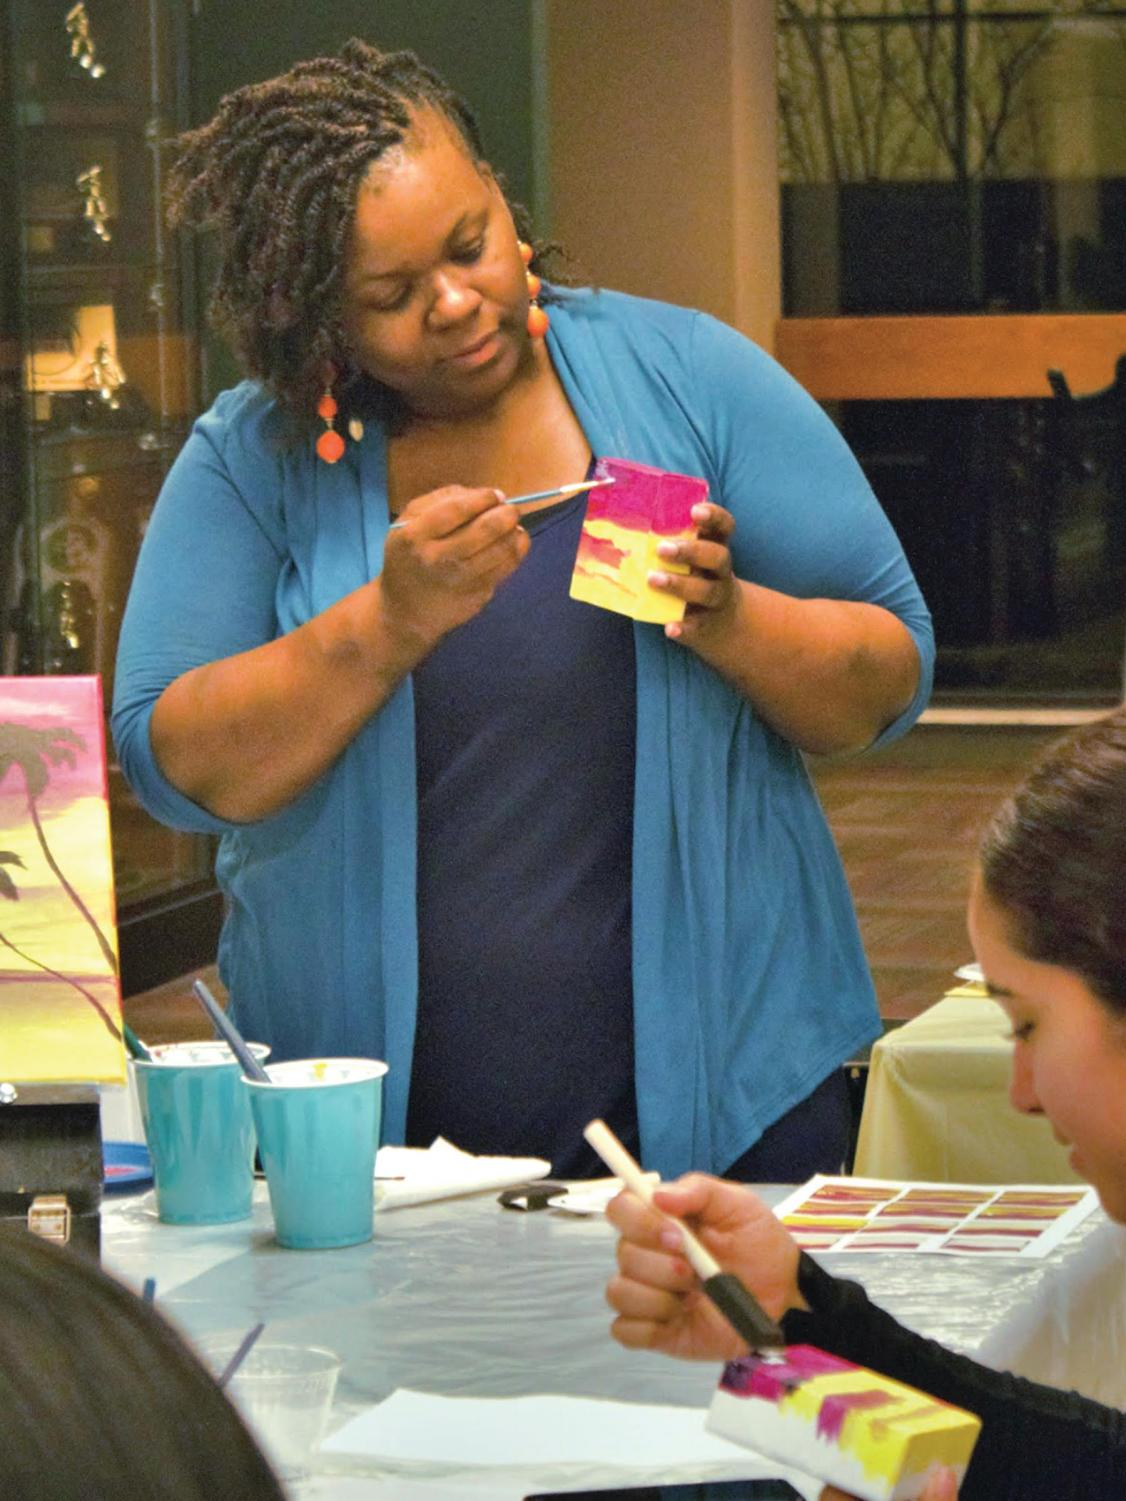 BSU members participate in art therapy during the pop-up paradise event.